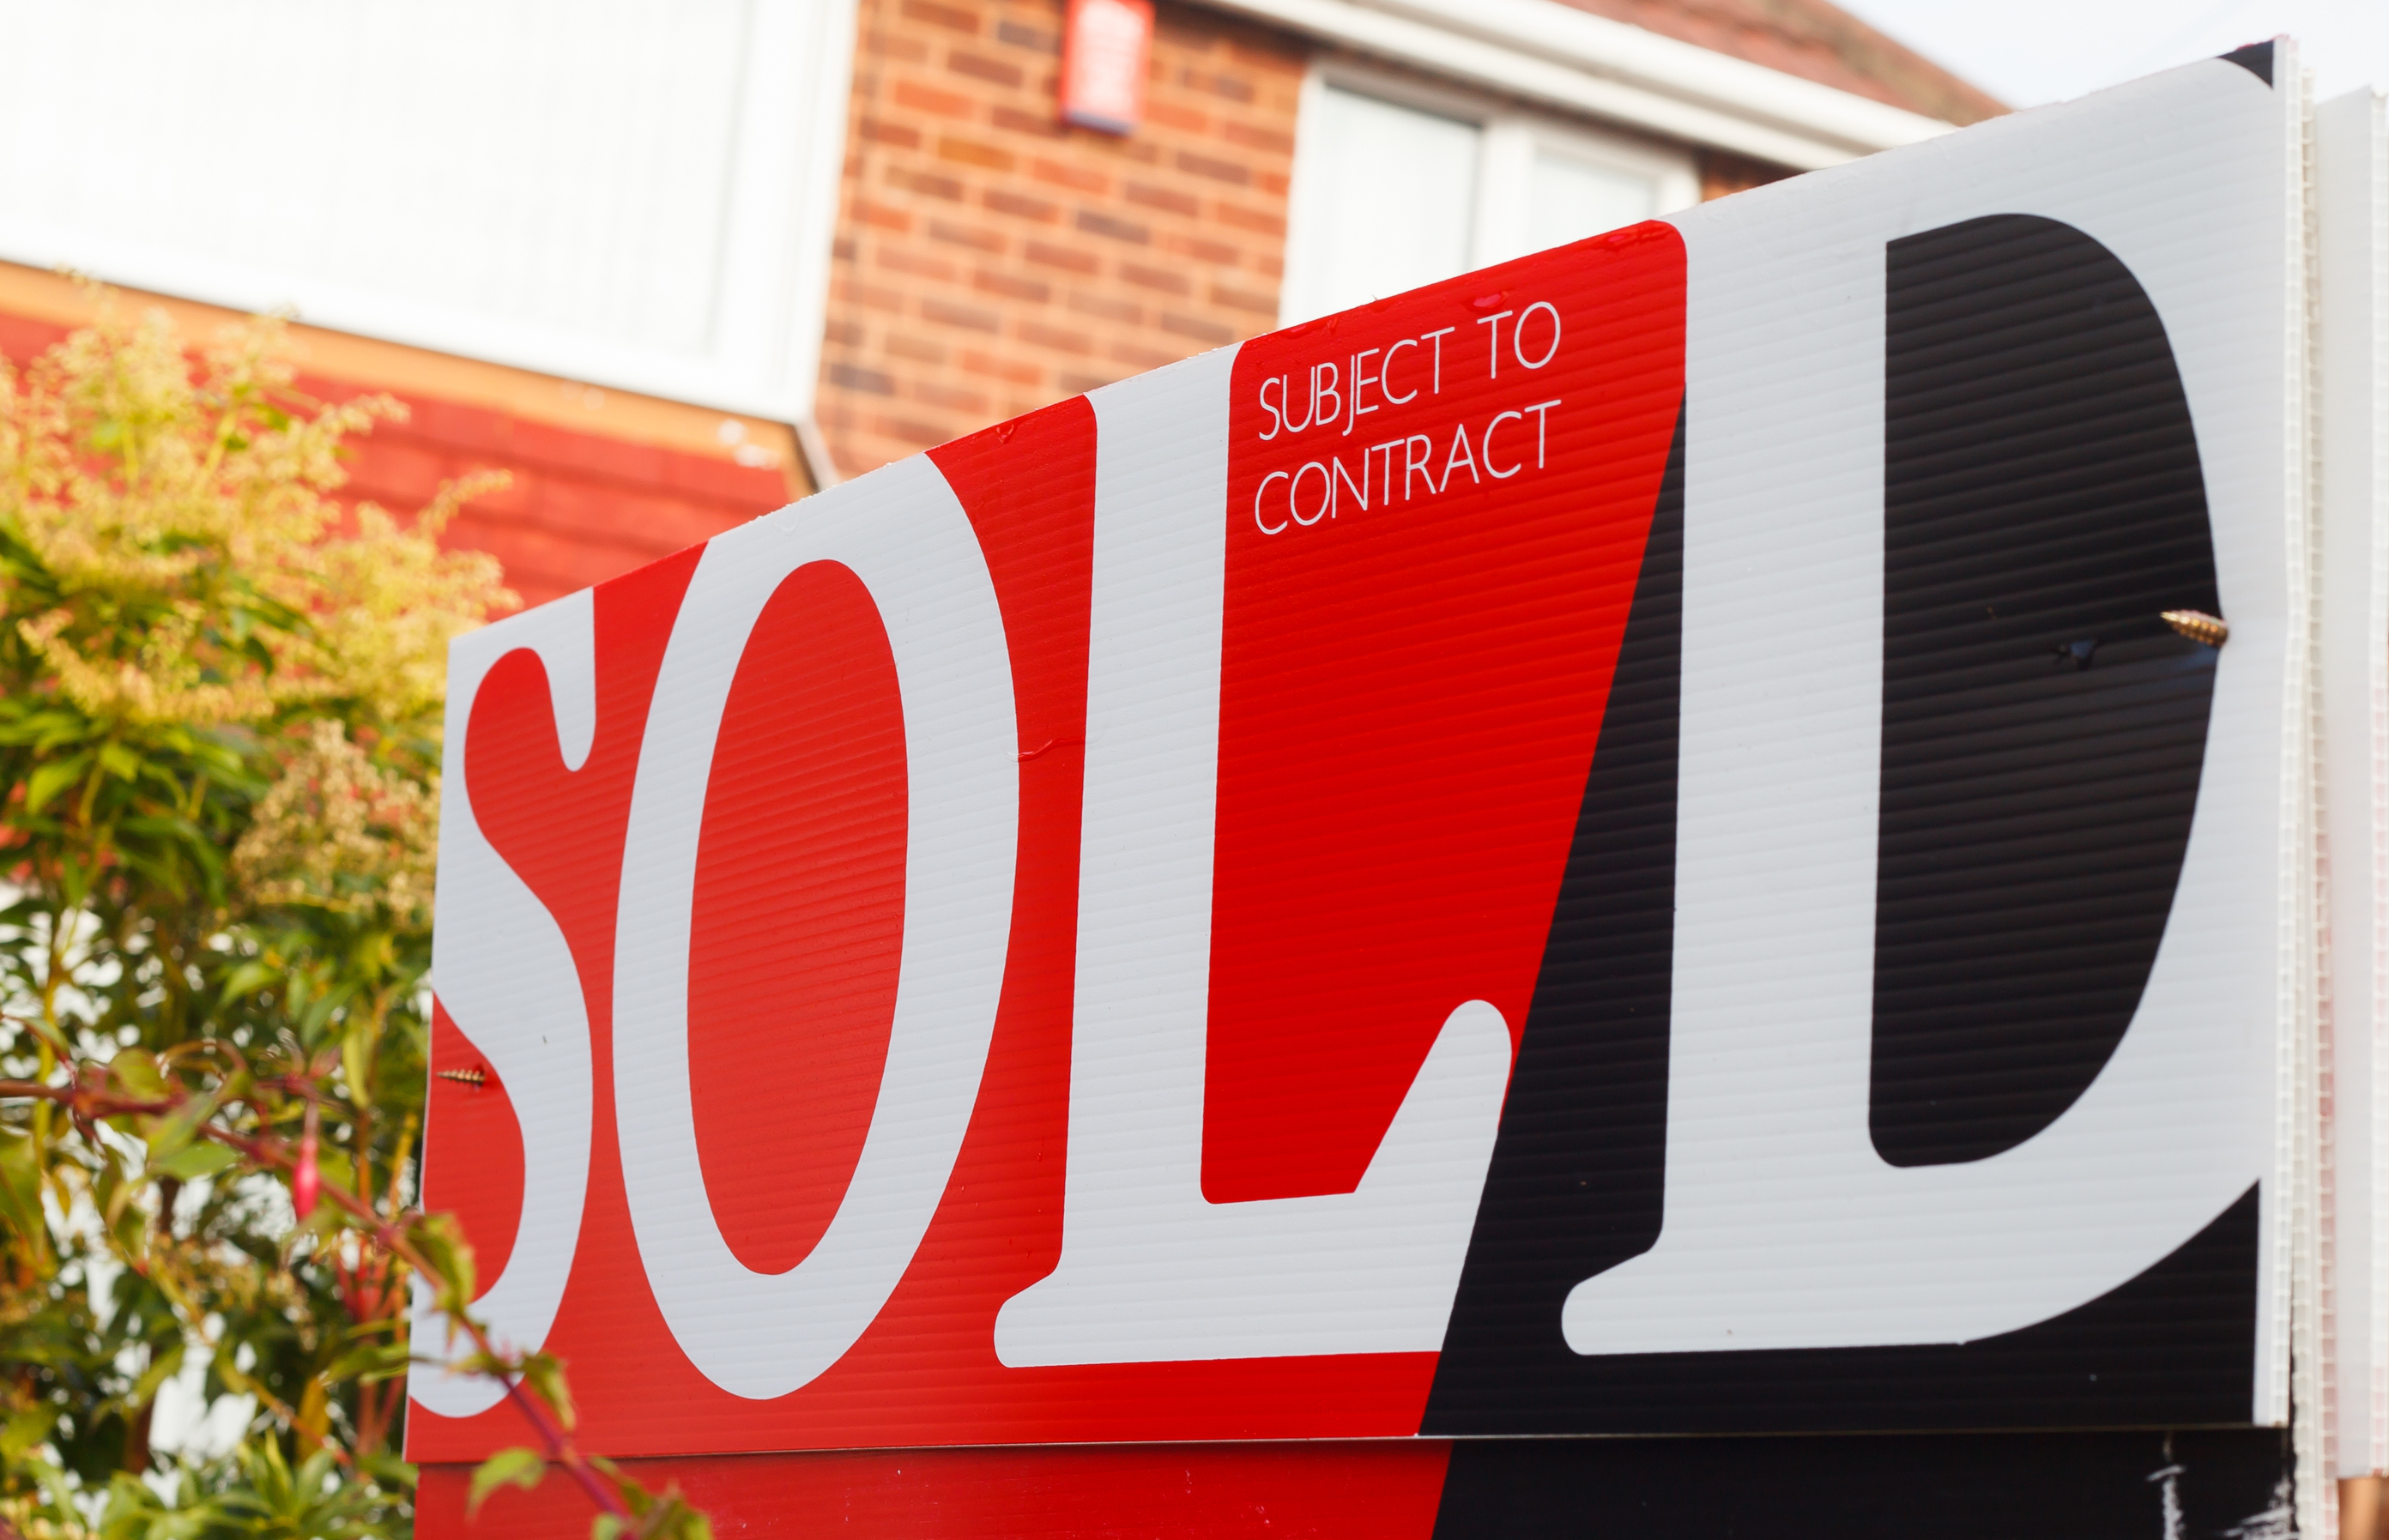 House Prices Increase in Every UK City for the First Time